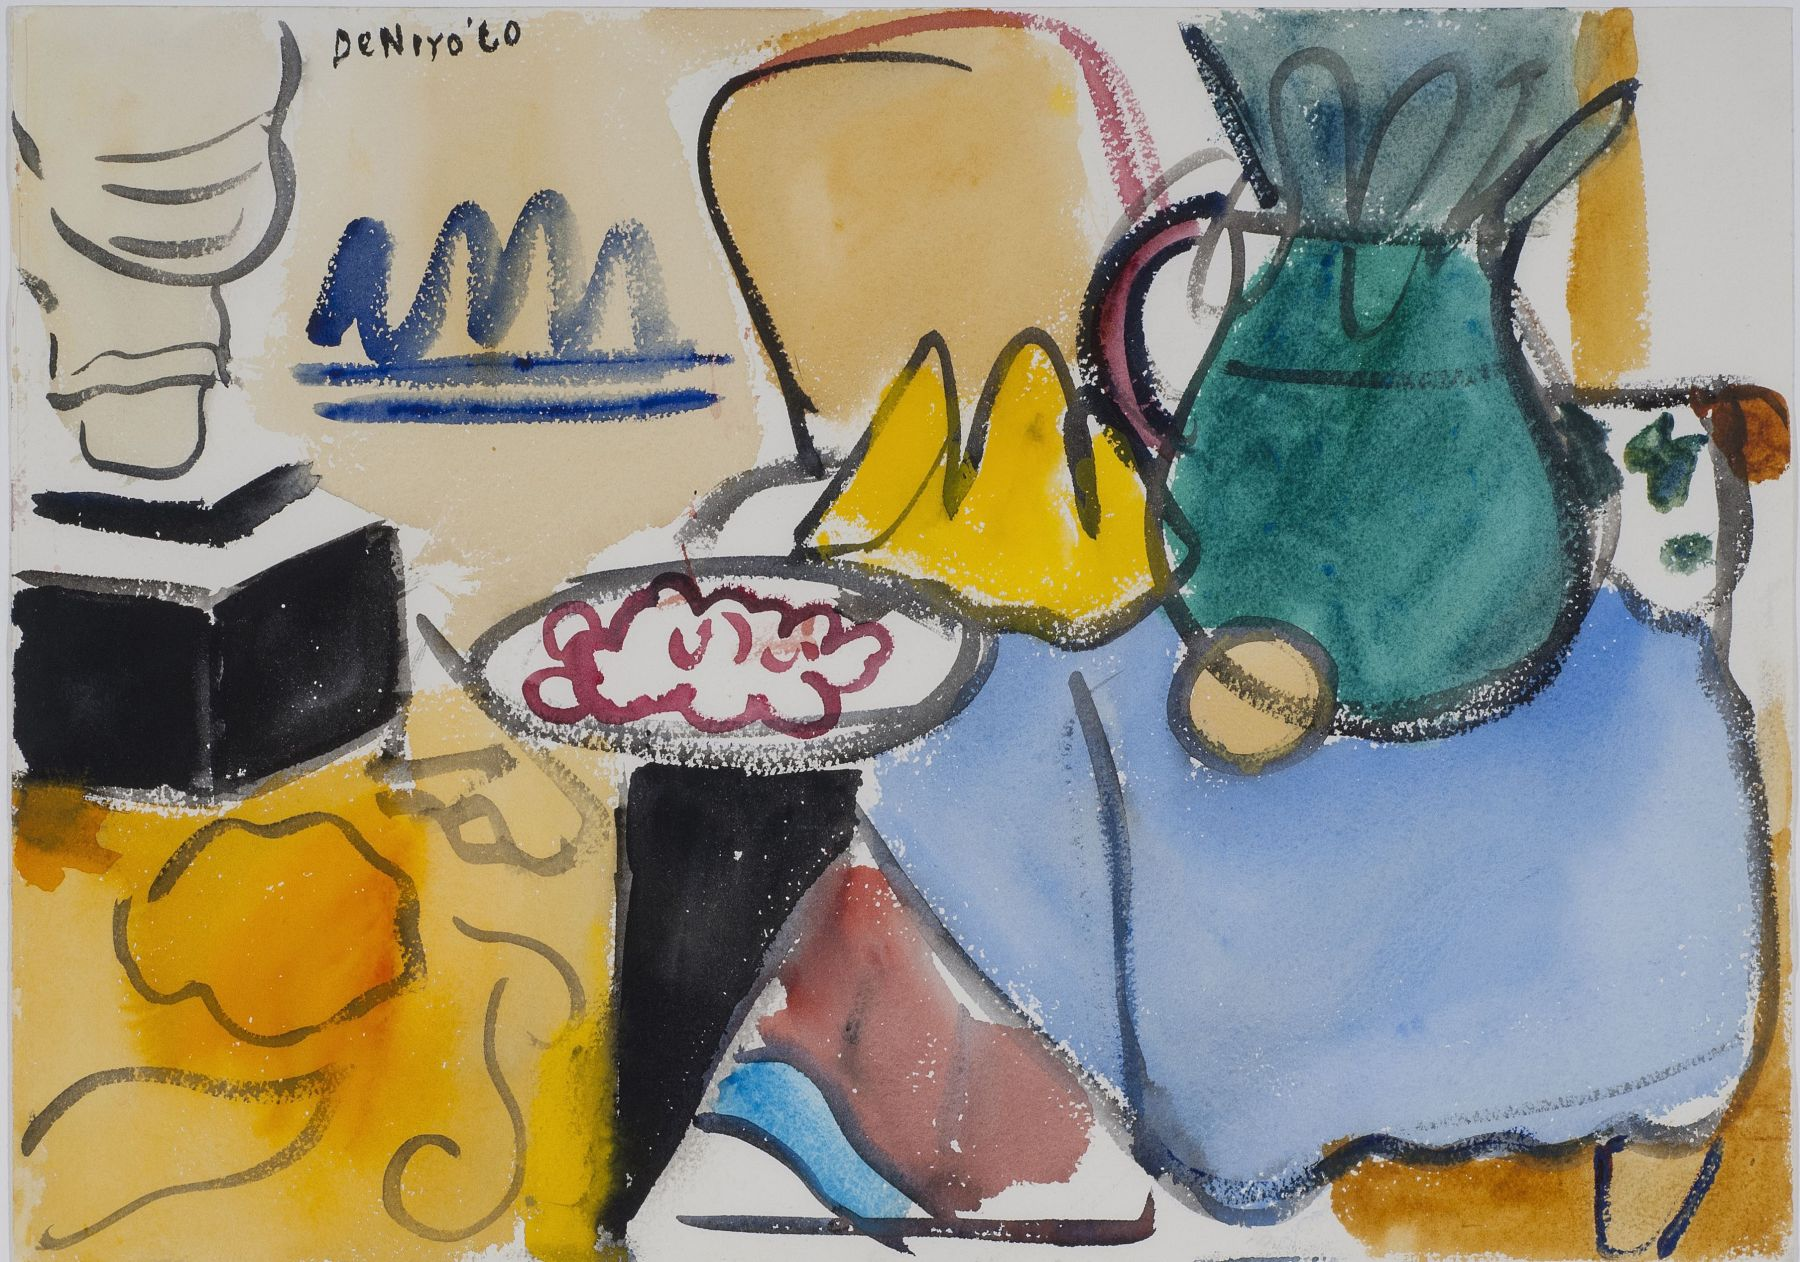 Untitled (Interior Still Life), 1960